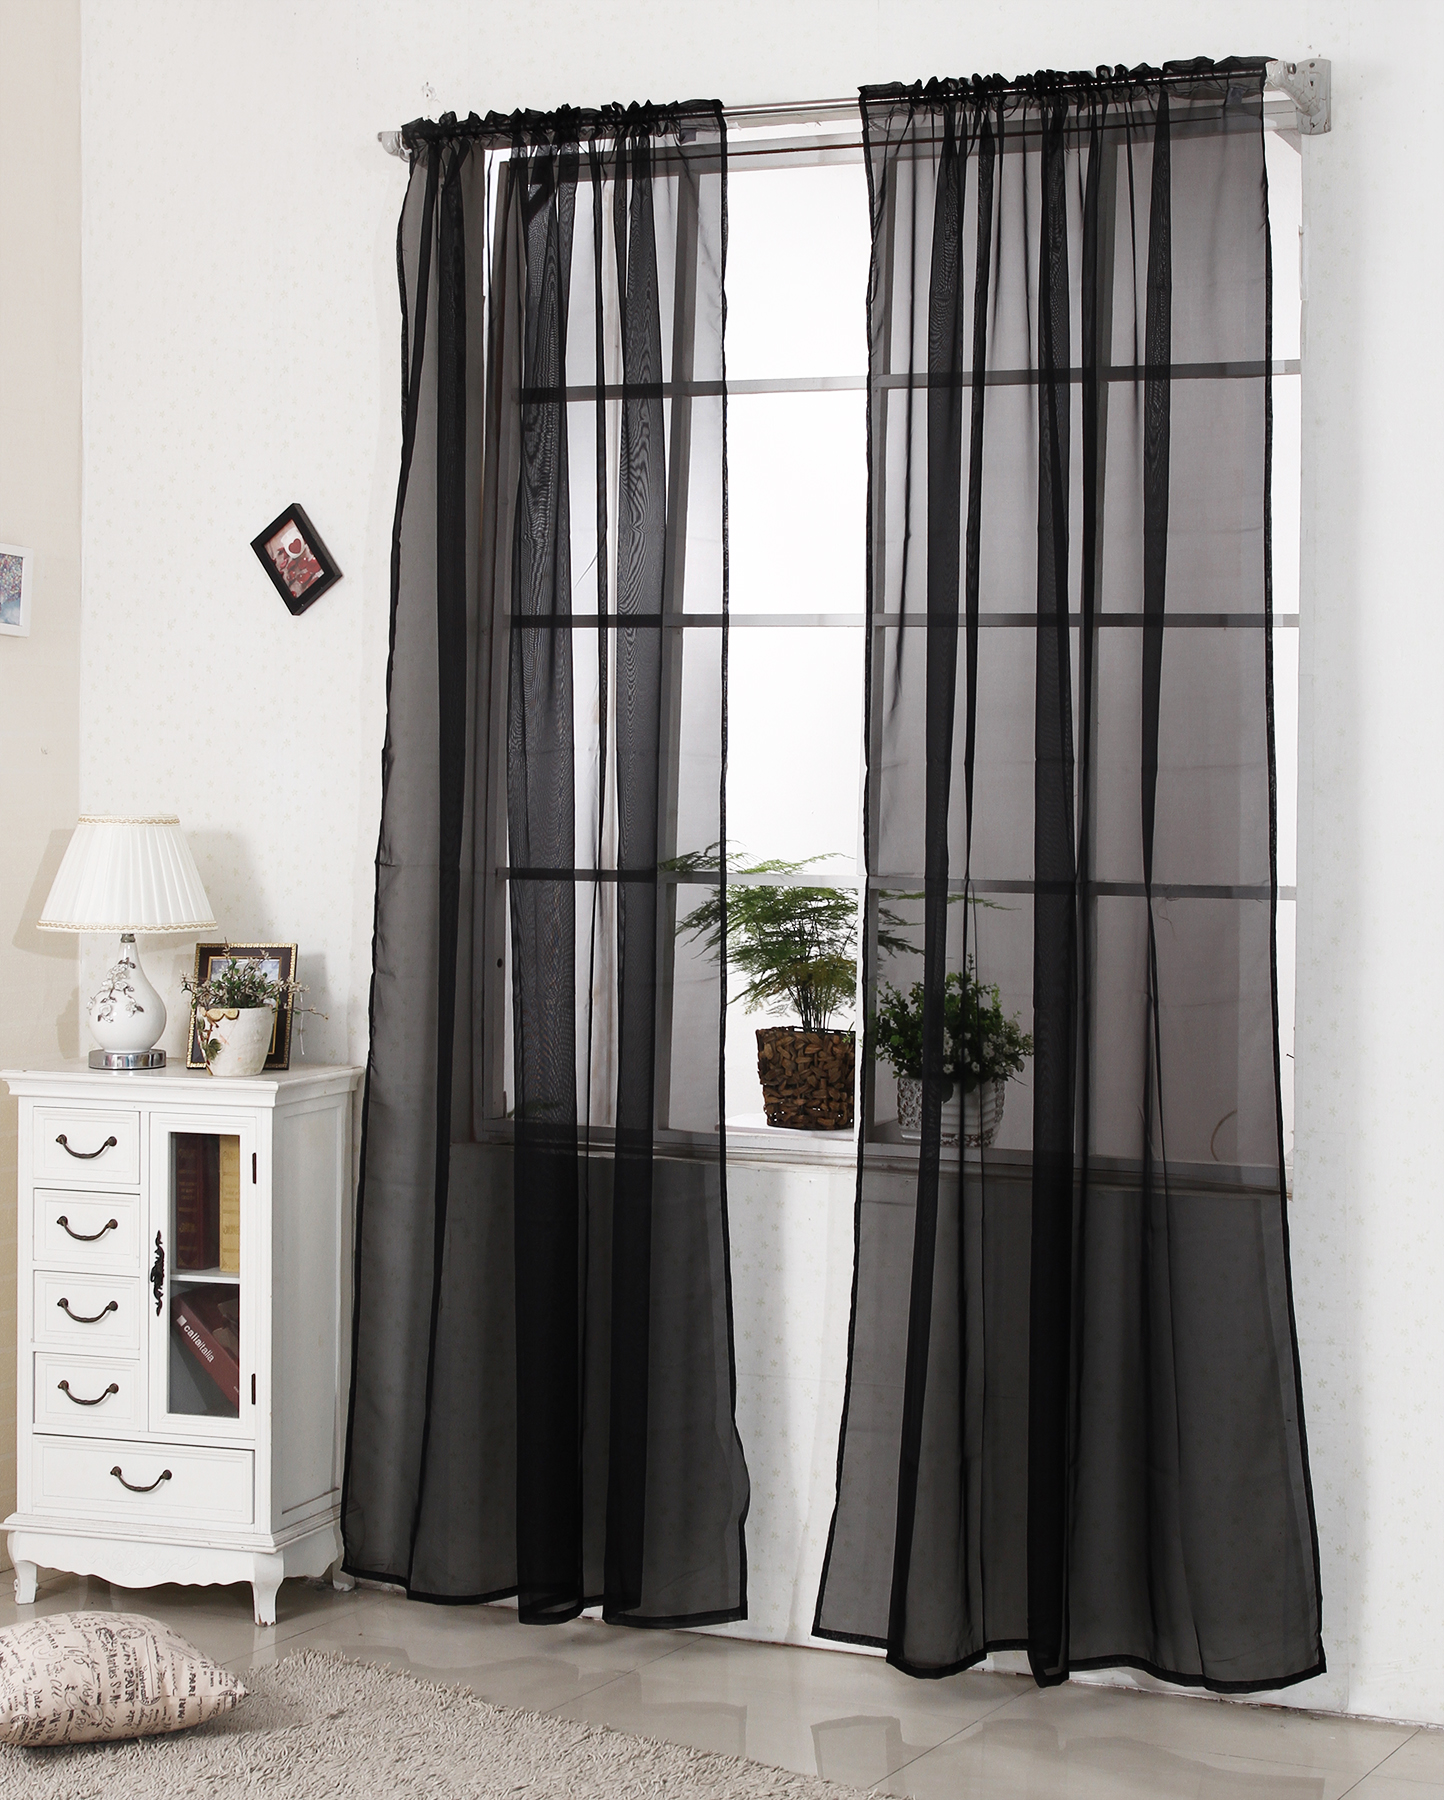 gardinen vorhang stores mit 50mm kr uselband transparent. Black Bedroom Furniture Sets. Home Design Ideas